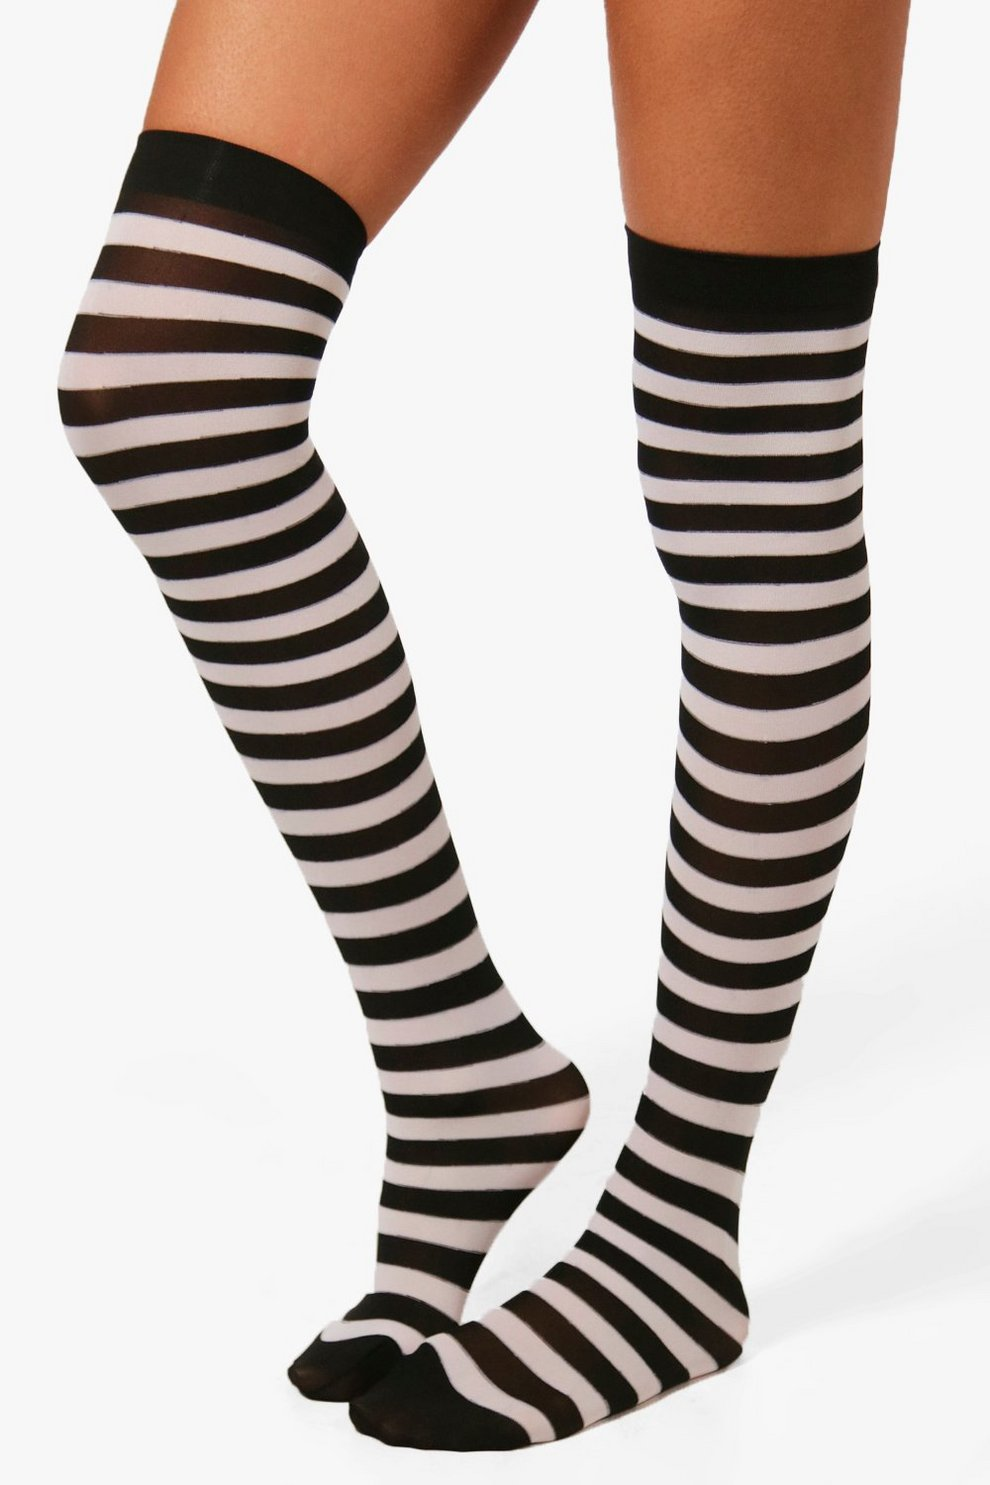 15a6cd130 Womens Black Emily Halloween Stripe Knee High Socks. Hover to zoom